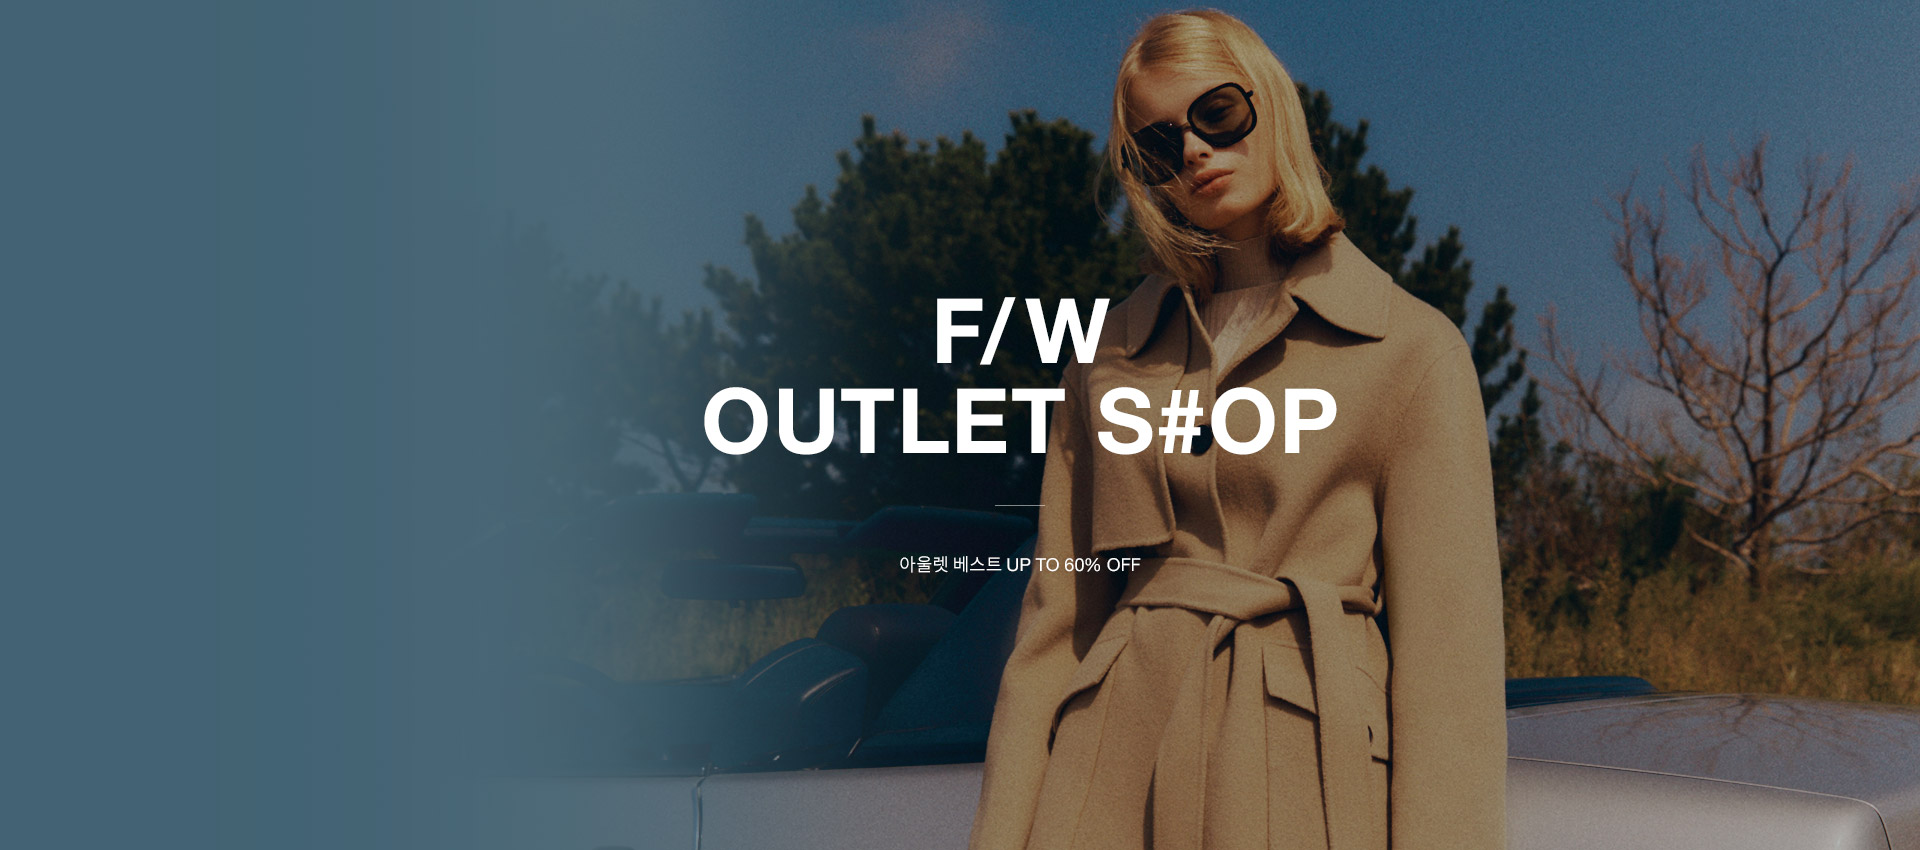 F/W OUTLET S#OP